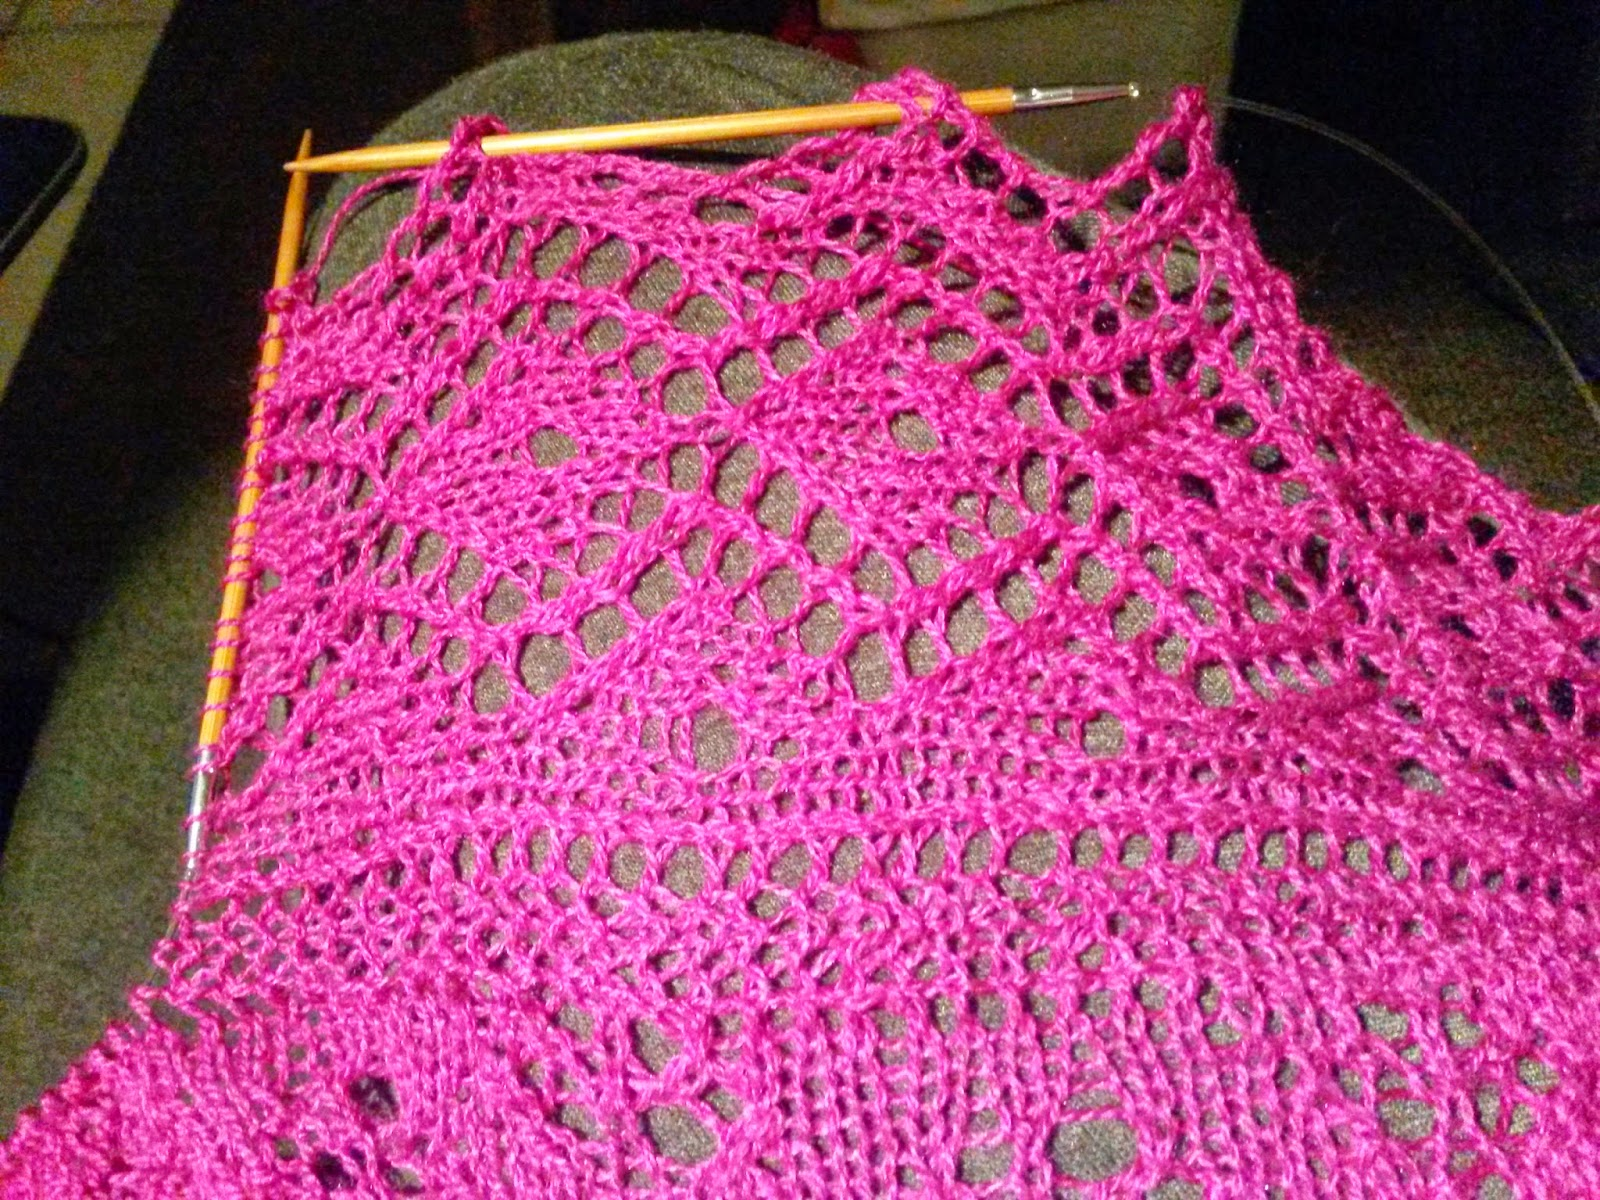 Knitting Picking Up Stitches For Border : Frisian Frillies: New needles and a pink shawl - Nieuwe naalden en een roze s...